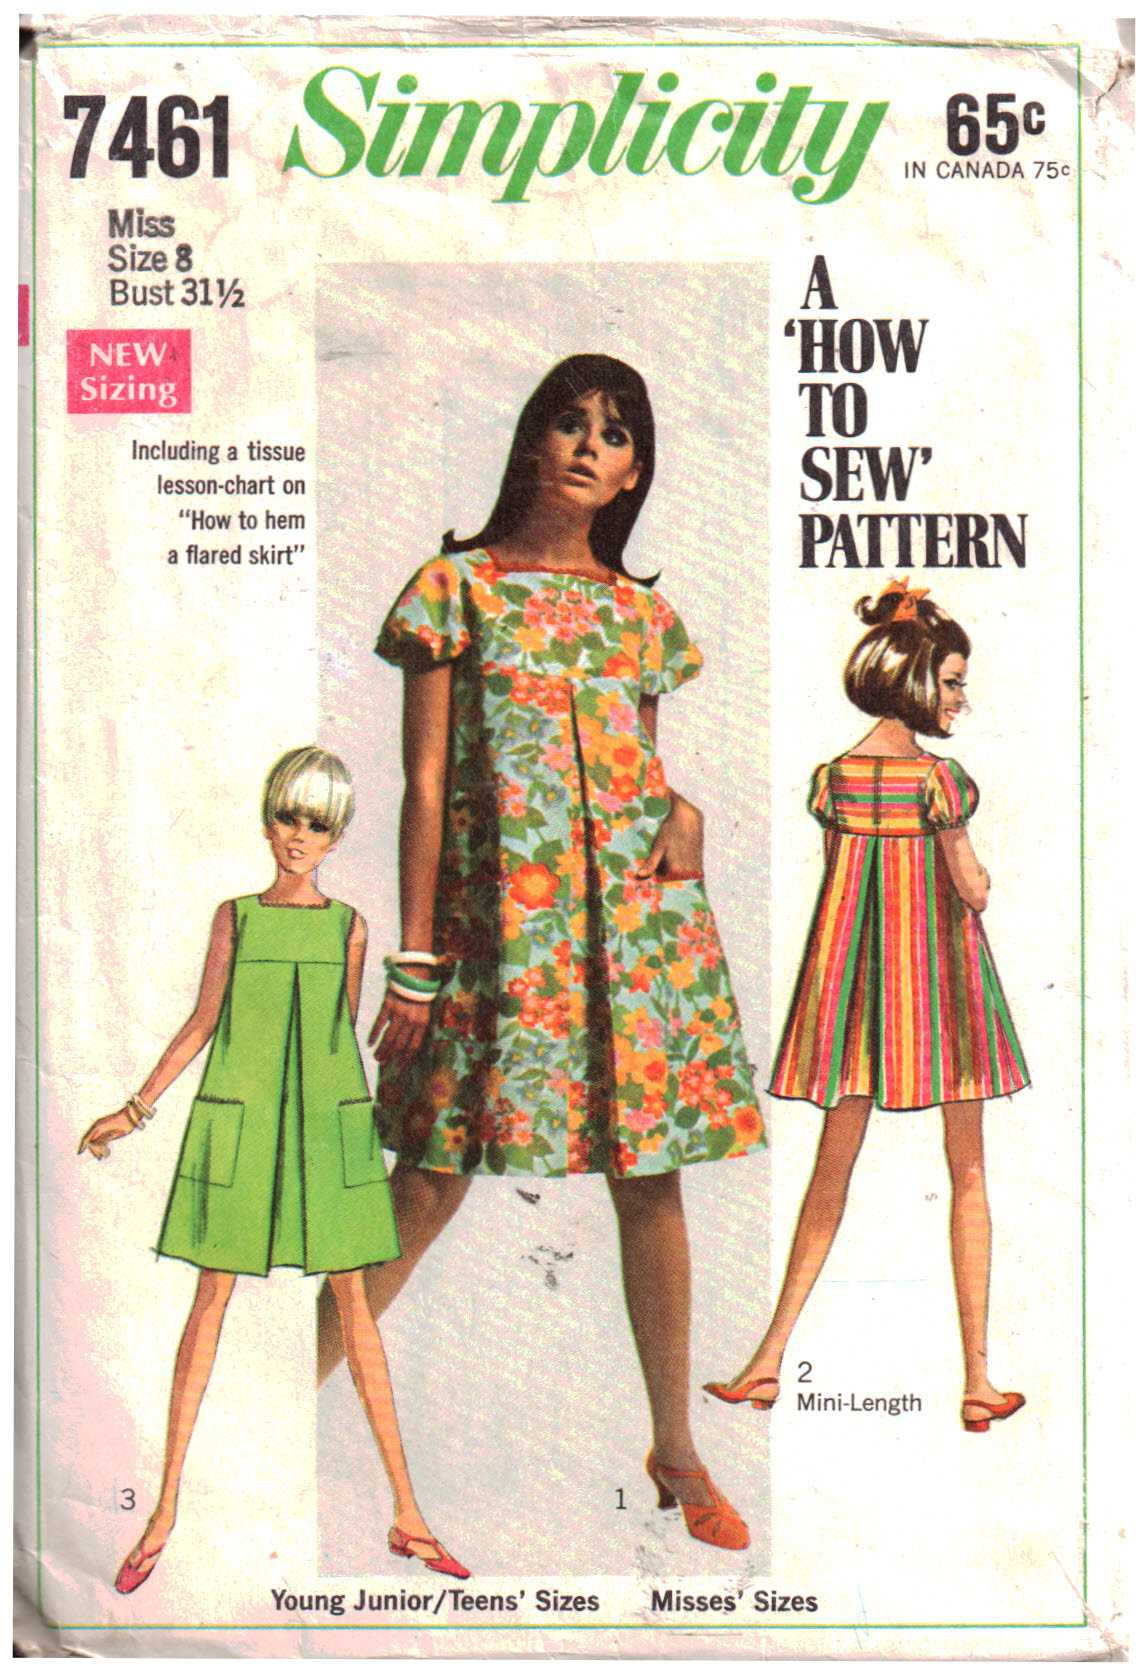 e9d33ac9dbccb Sewing Patterns - Pattern-Walk Simplicity Sewing Patterns collection